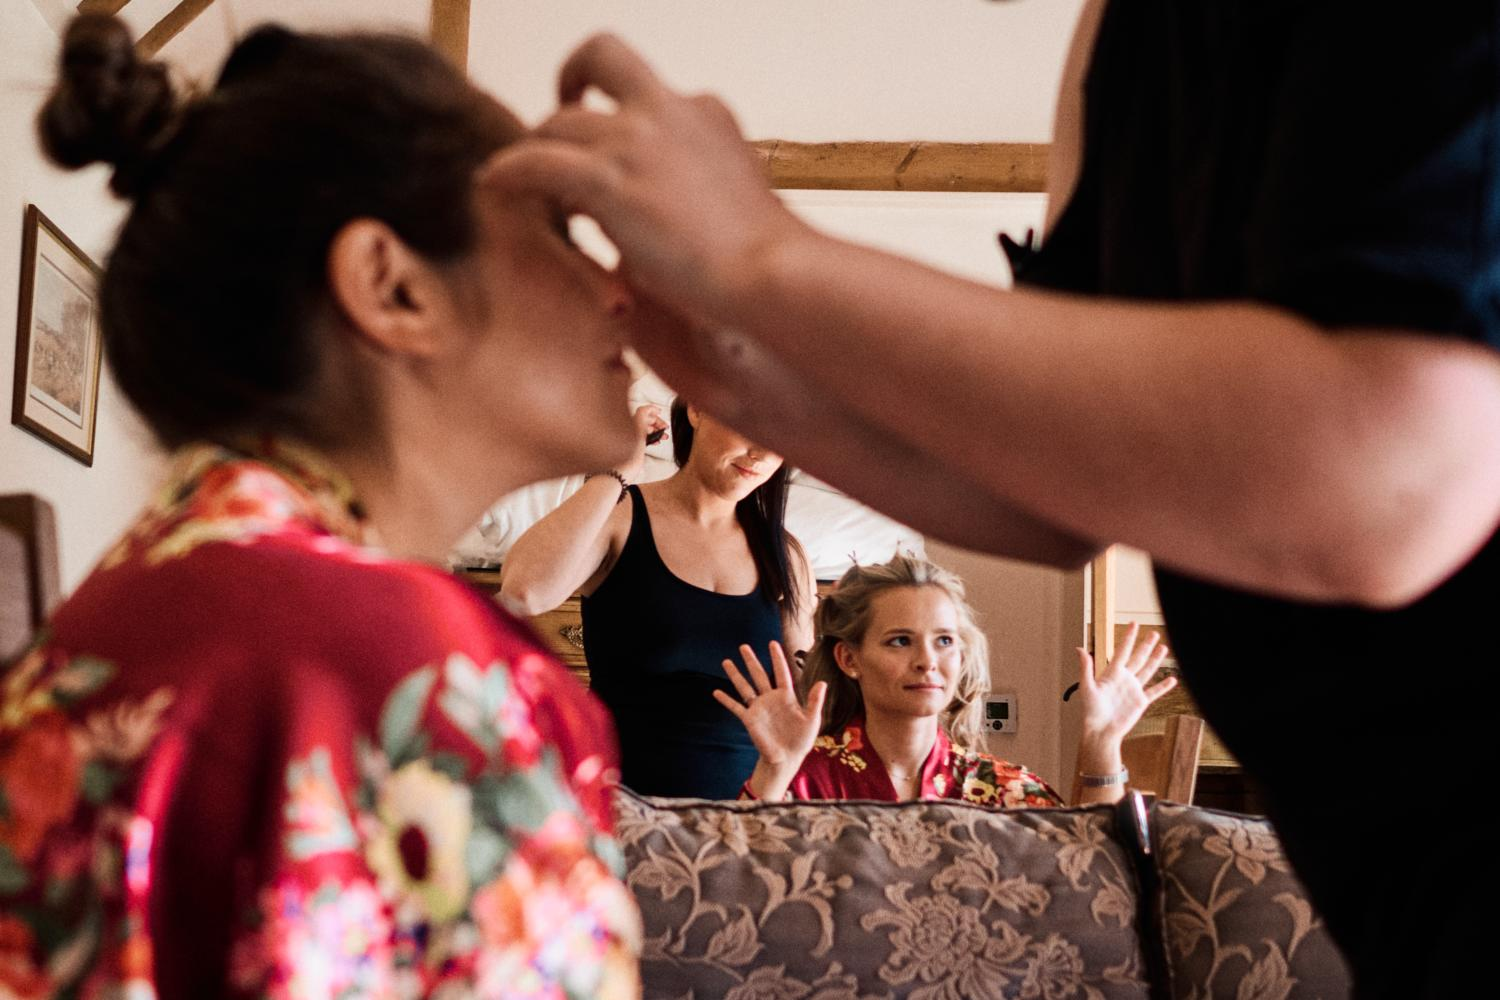 A bridesmaid raises her hands in celebration as another has her makeup applied